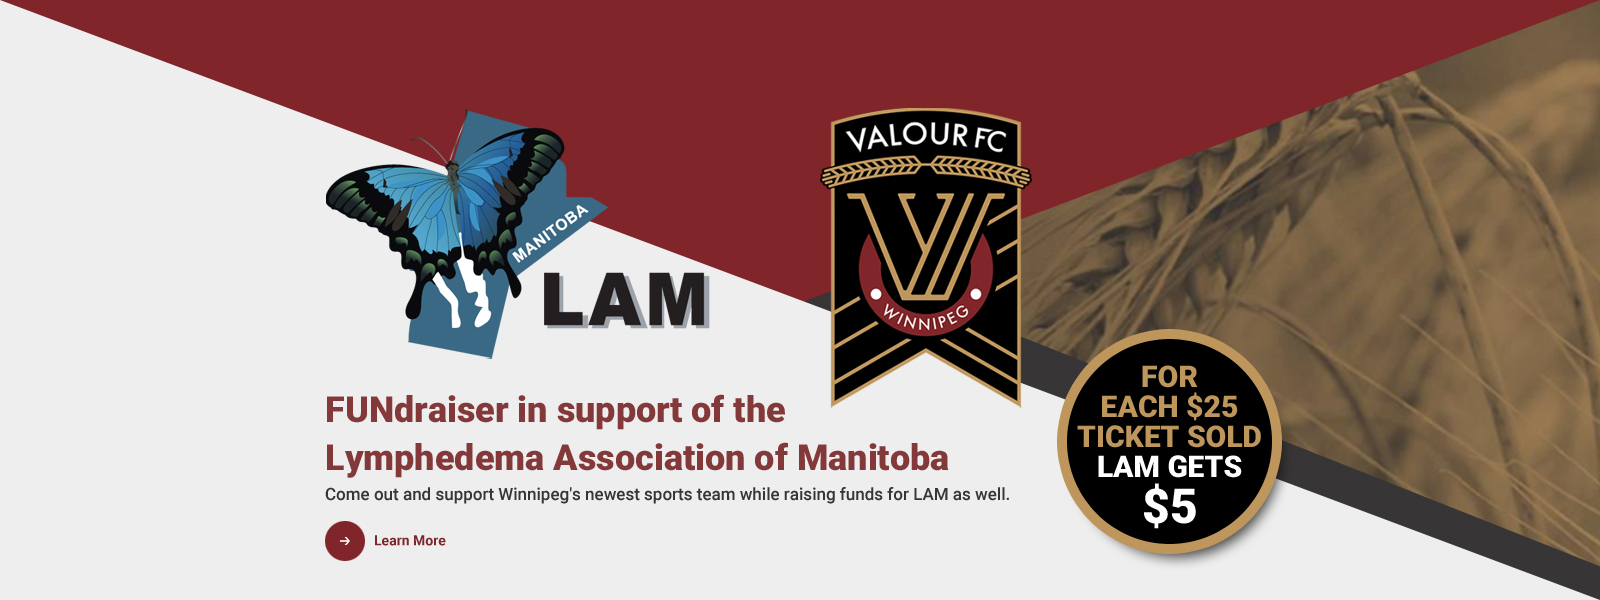 Valour FC FUNdraiser in support of the Lymphedema Association of Manitoba